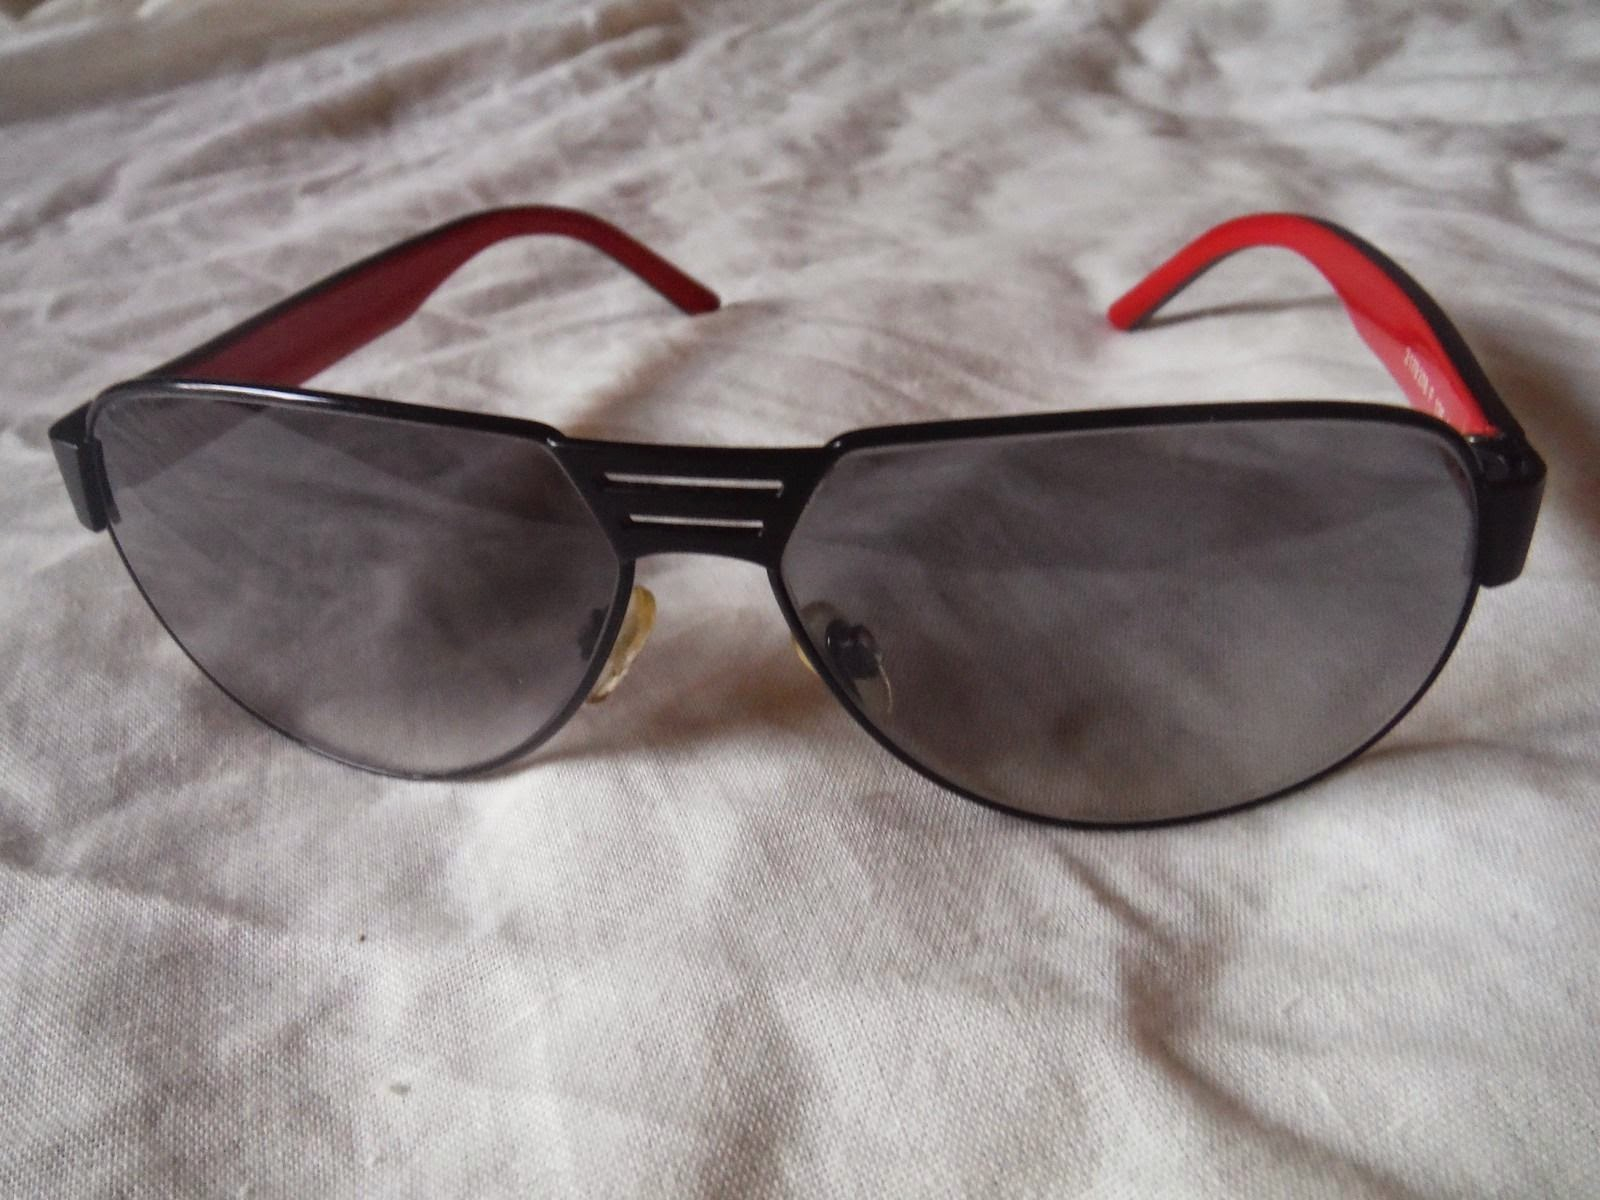 m sunglasses bmw itm for x car double holder